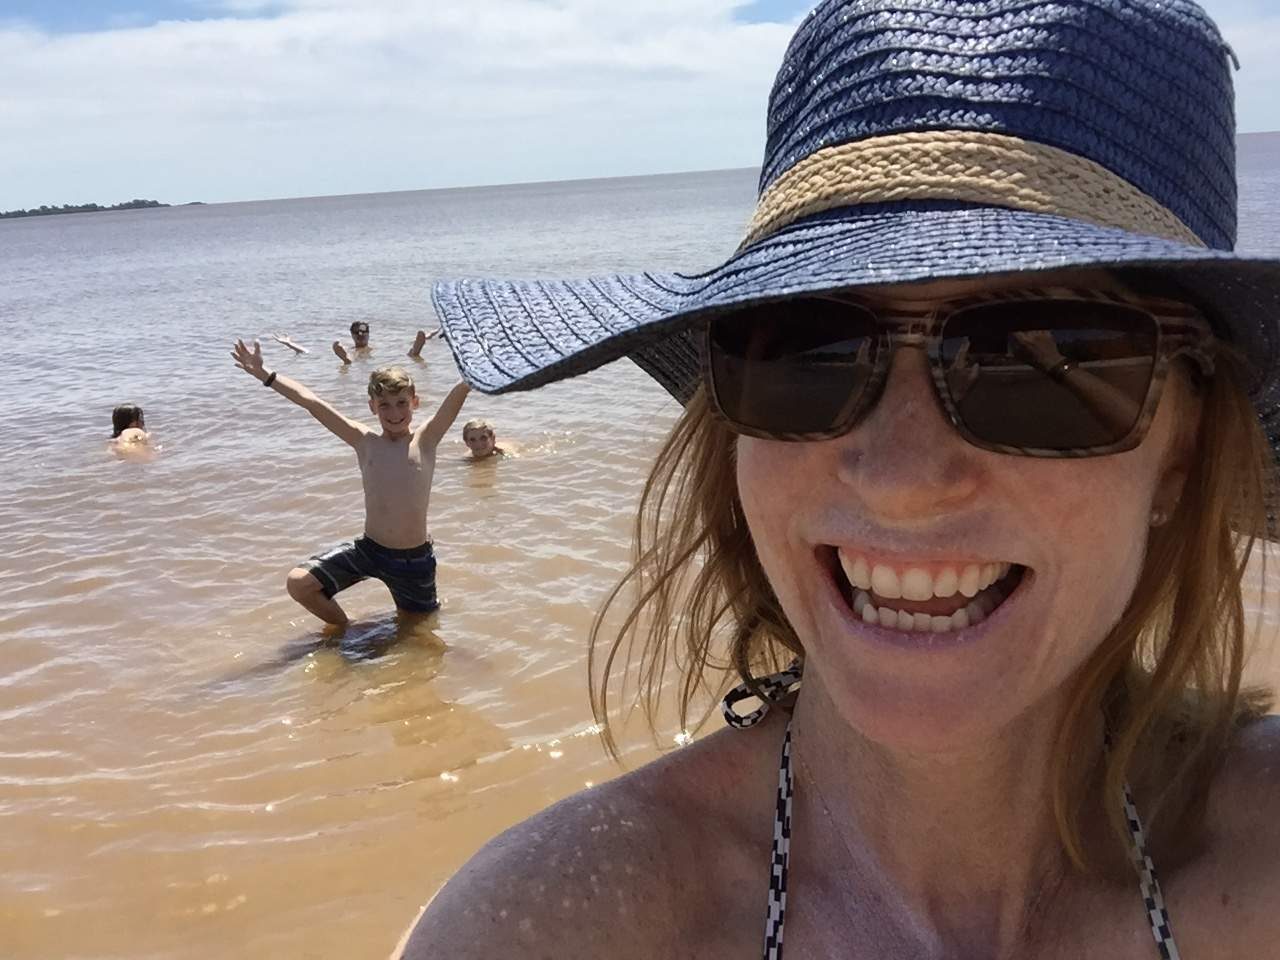 Swimming in the Rio de la Plata off the coast of Colonia del Sacramento, Uruguay